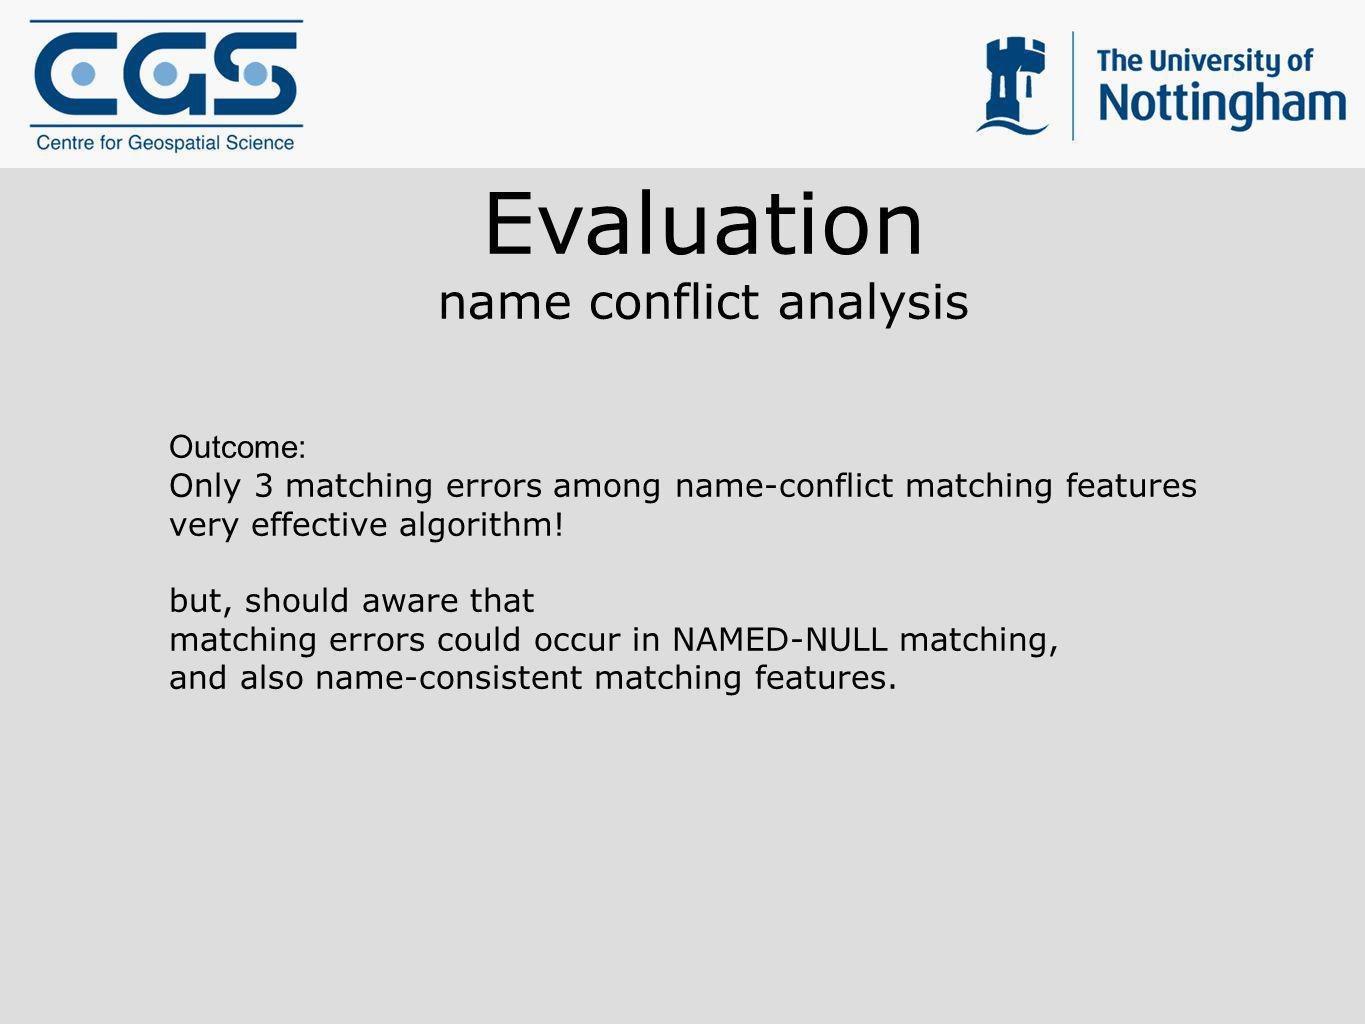 Evaluation name conflict analysis Outcome: Only 3 matching errors among name-conflict matching features very effective algorithm! but, should aware th